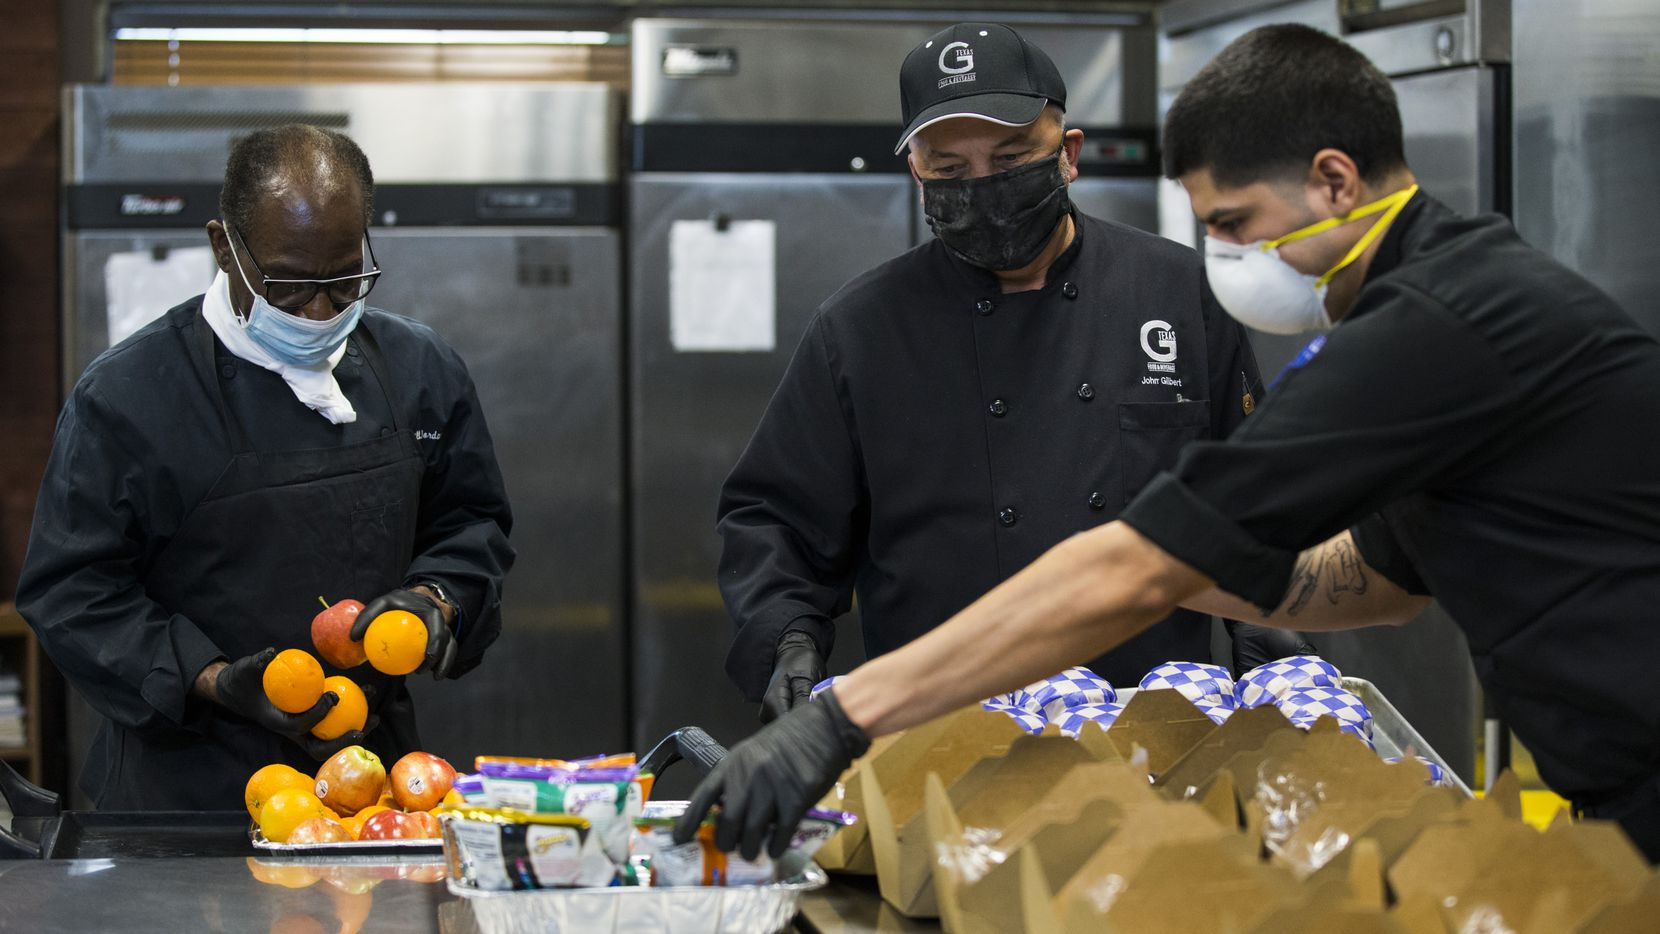 John Gilbert (center), owner of G-Texas Custom Catering, and employees Bill Jordan (left) and Nieves Perales (right) pack box lunches for Austin Street Shelter on Saturday, April 11, 2020 at G-Texas Custom Catering in Dallas. (Ashley Landis/The Dallas Morning News)